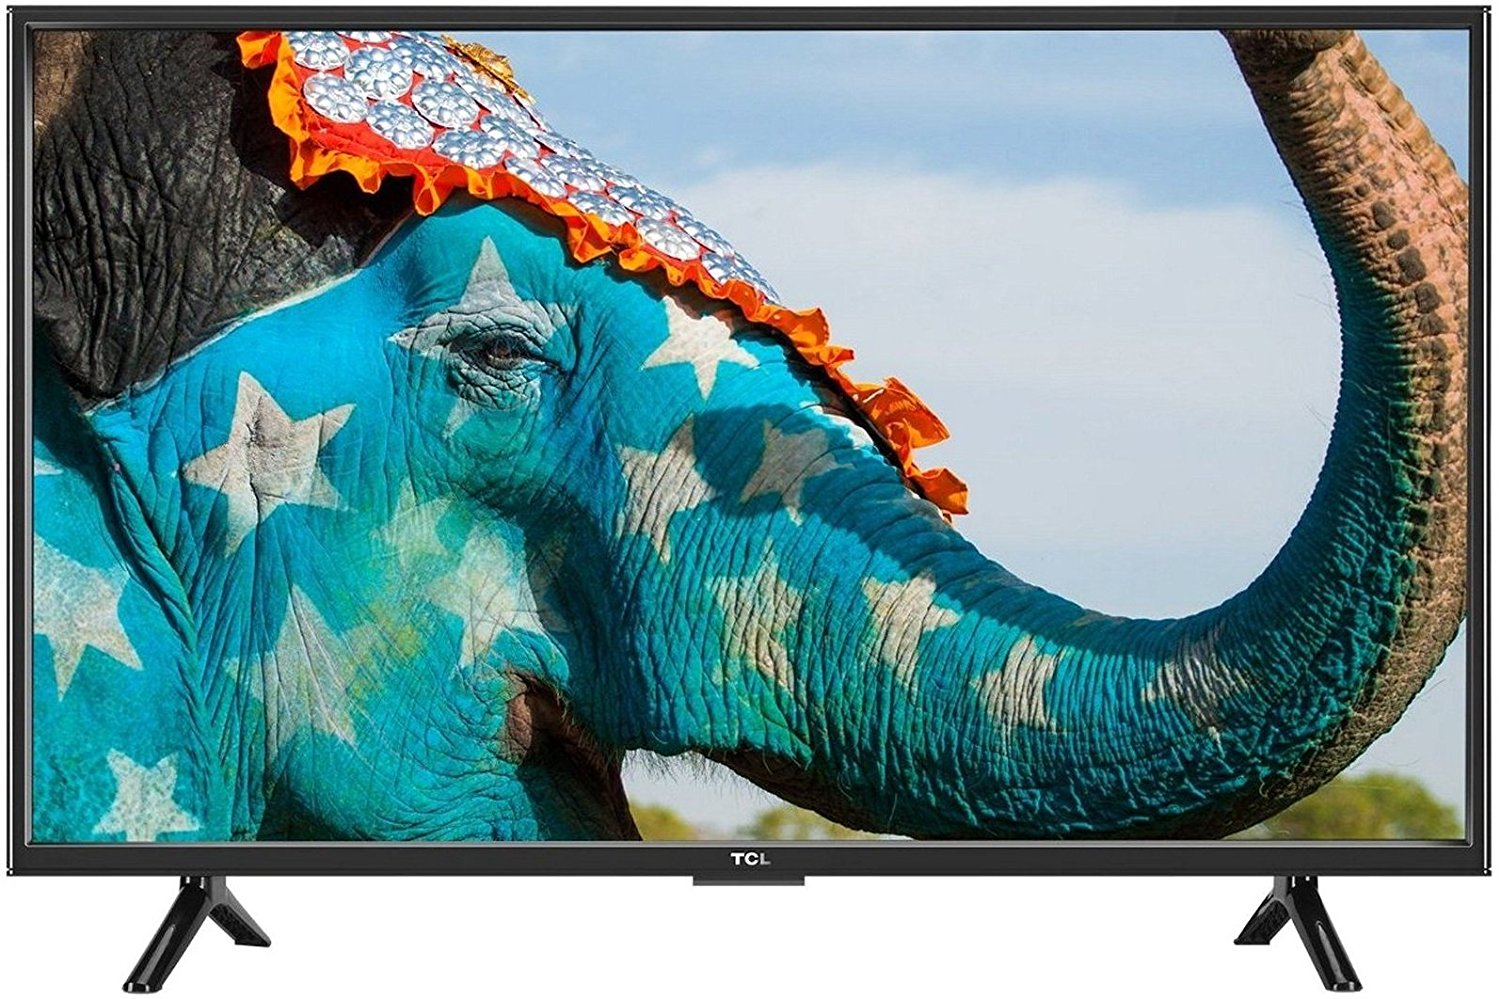 TCL 99.1 cm (39 inches) L39D2900 Full HD LED TV